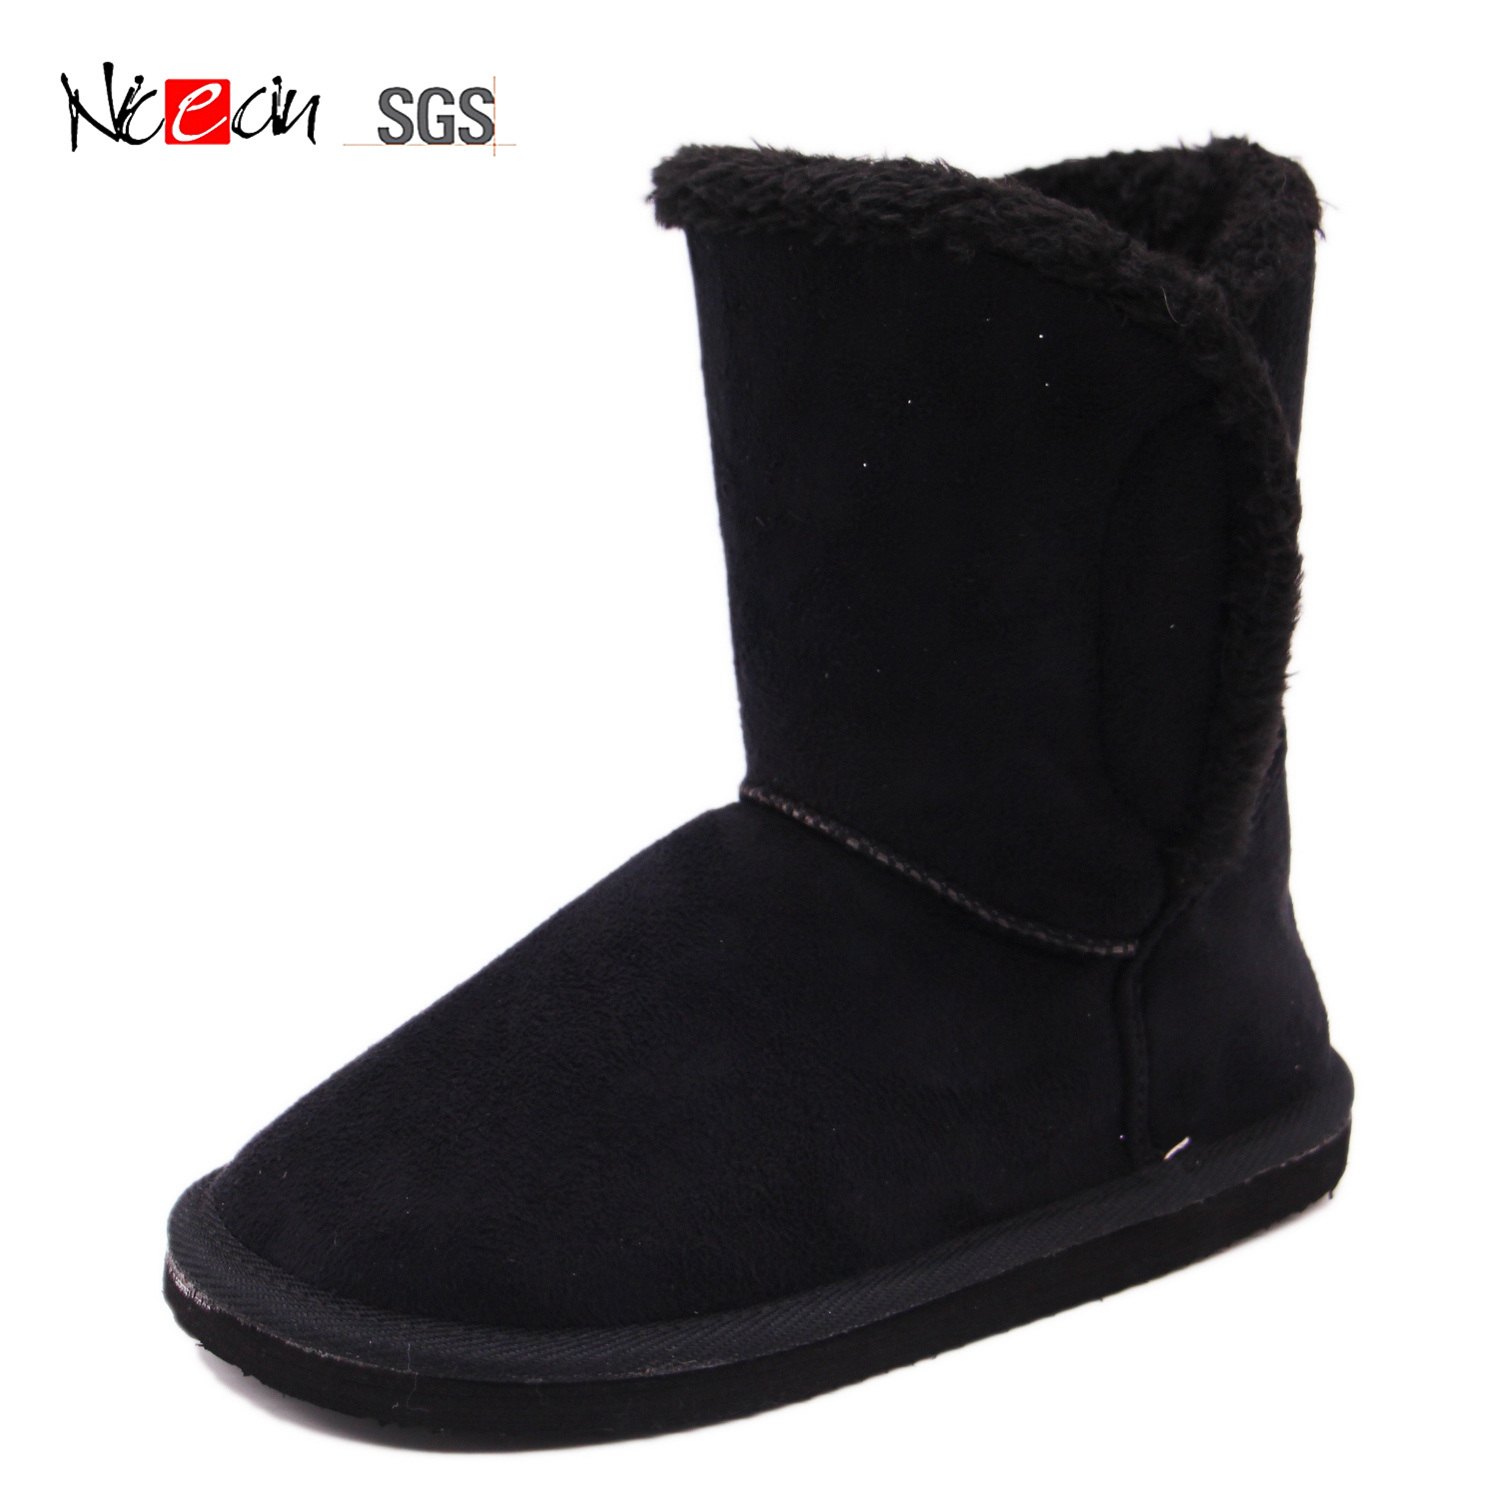 1d7d074bf China Shoes Winter Boots, Shoes Winter Boots Wholesale, Manufacturers,  Price | Made-in-China.com